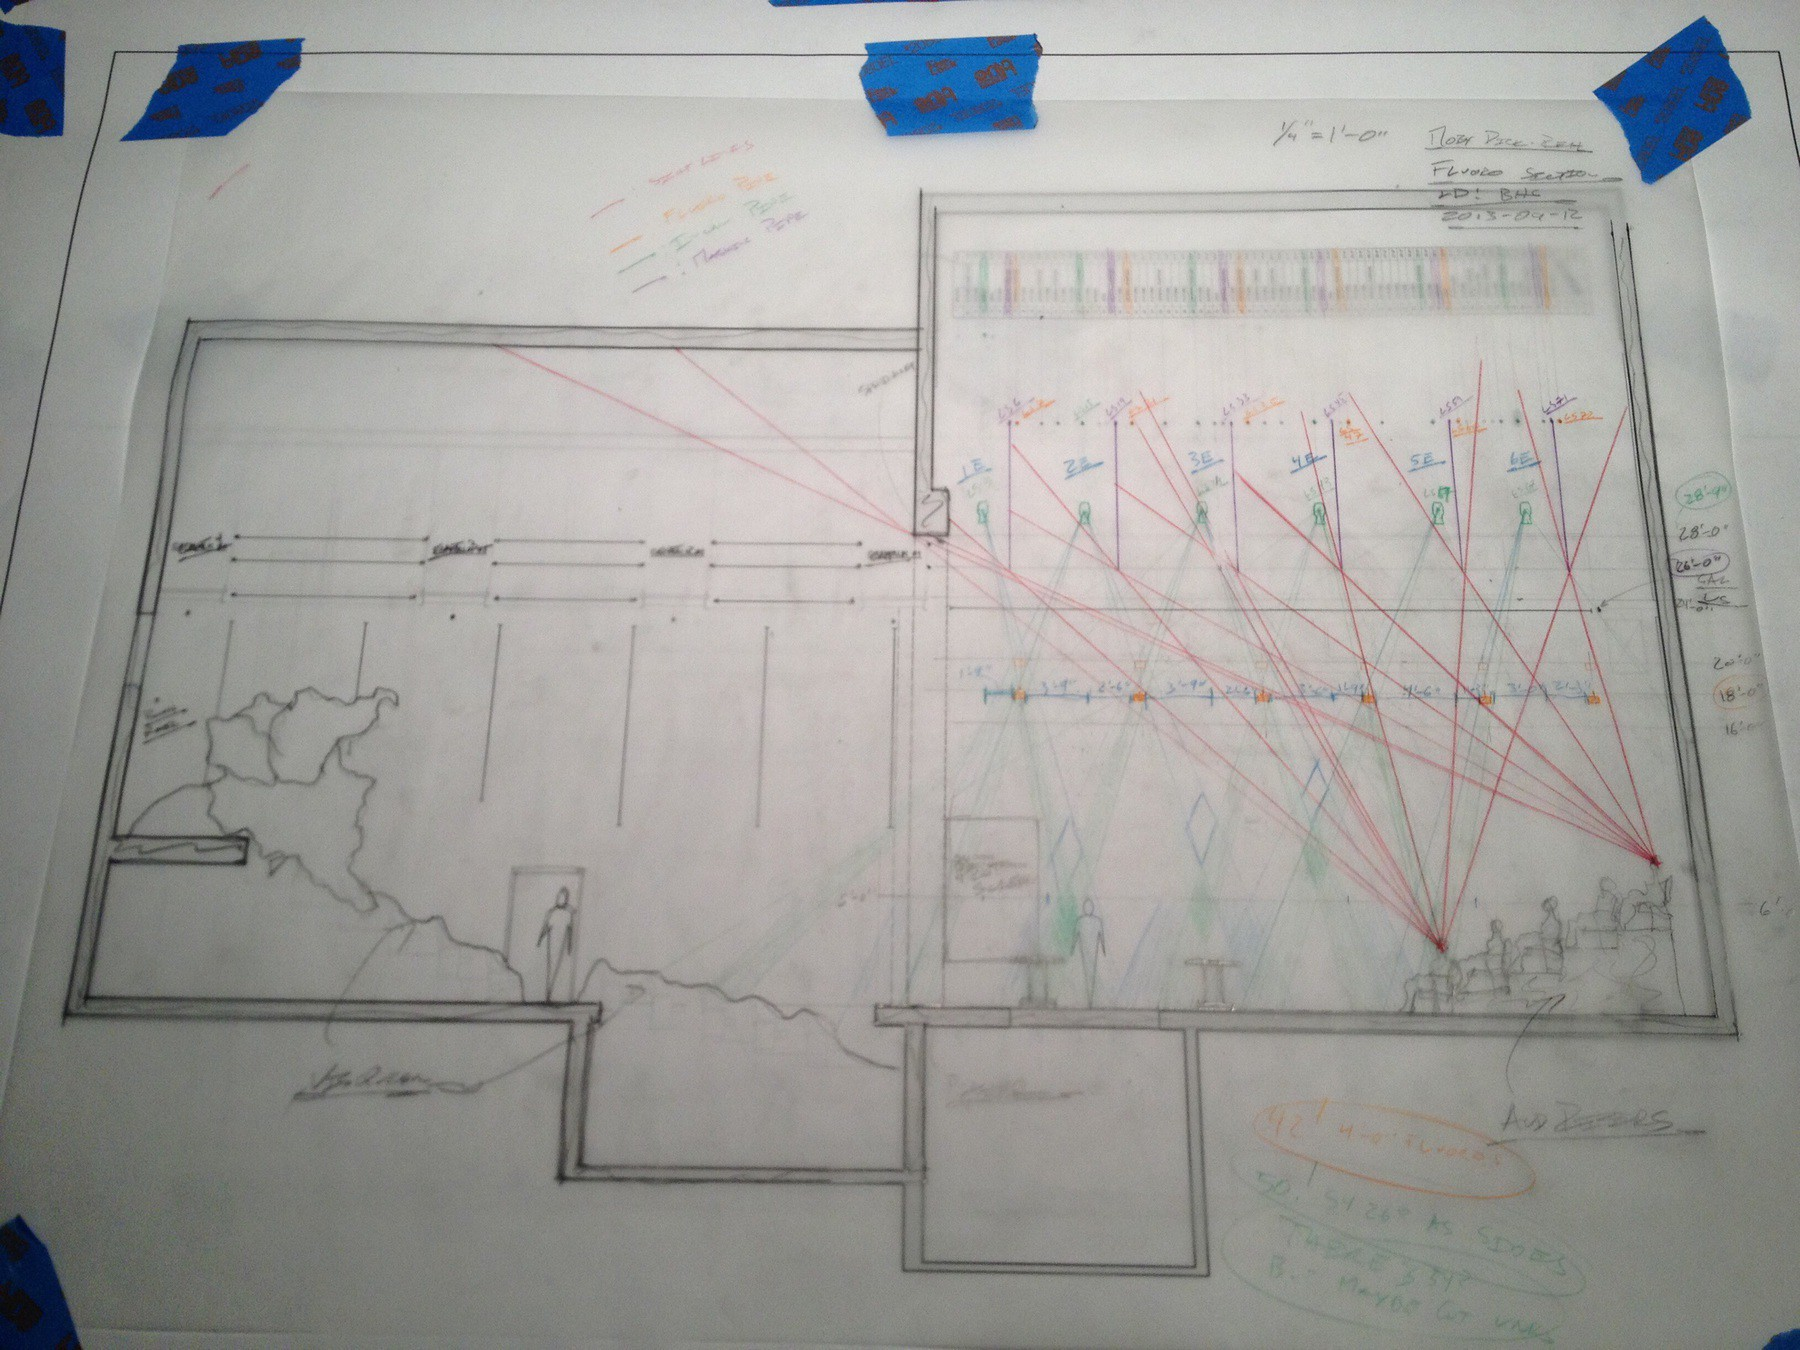 Lighting Worksheet and Sightline Section on Tracing Paper